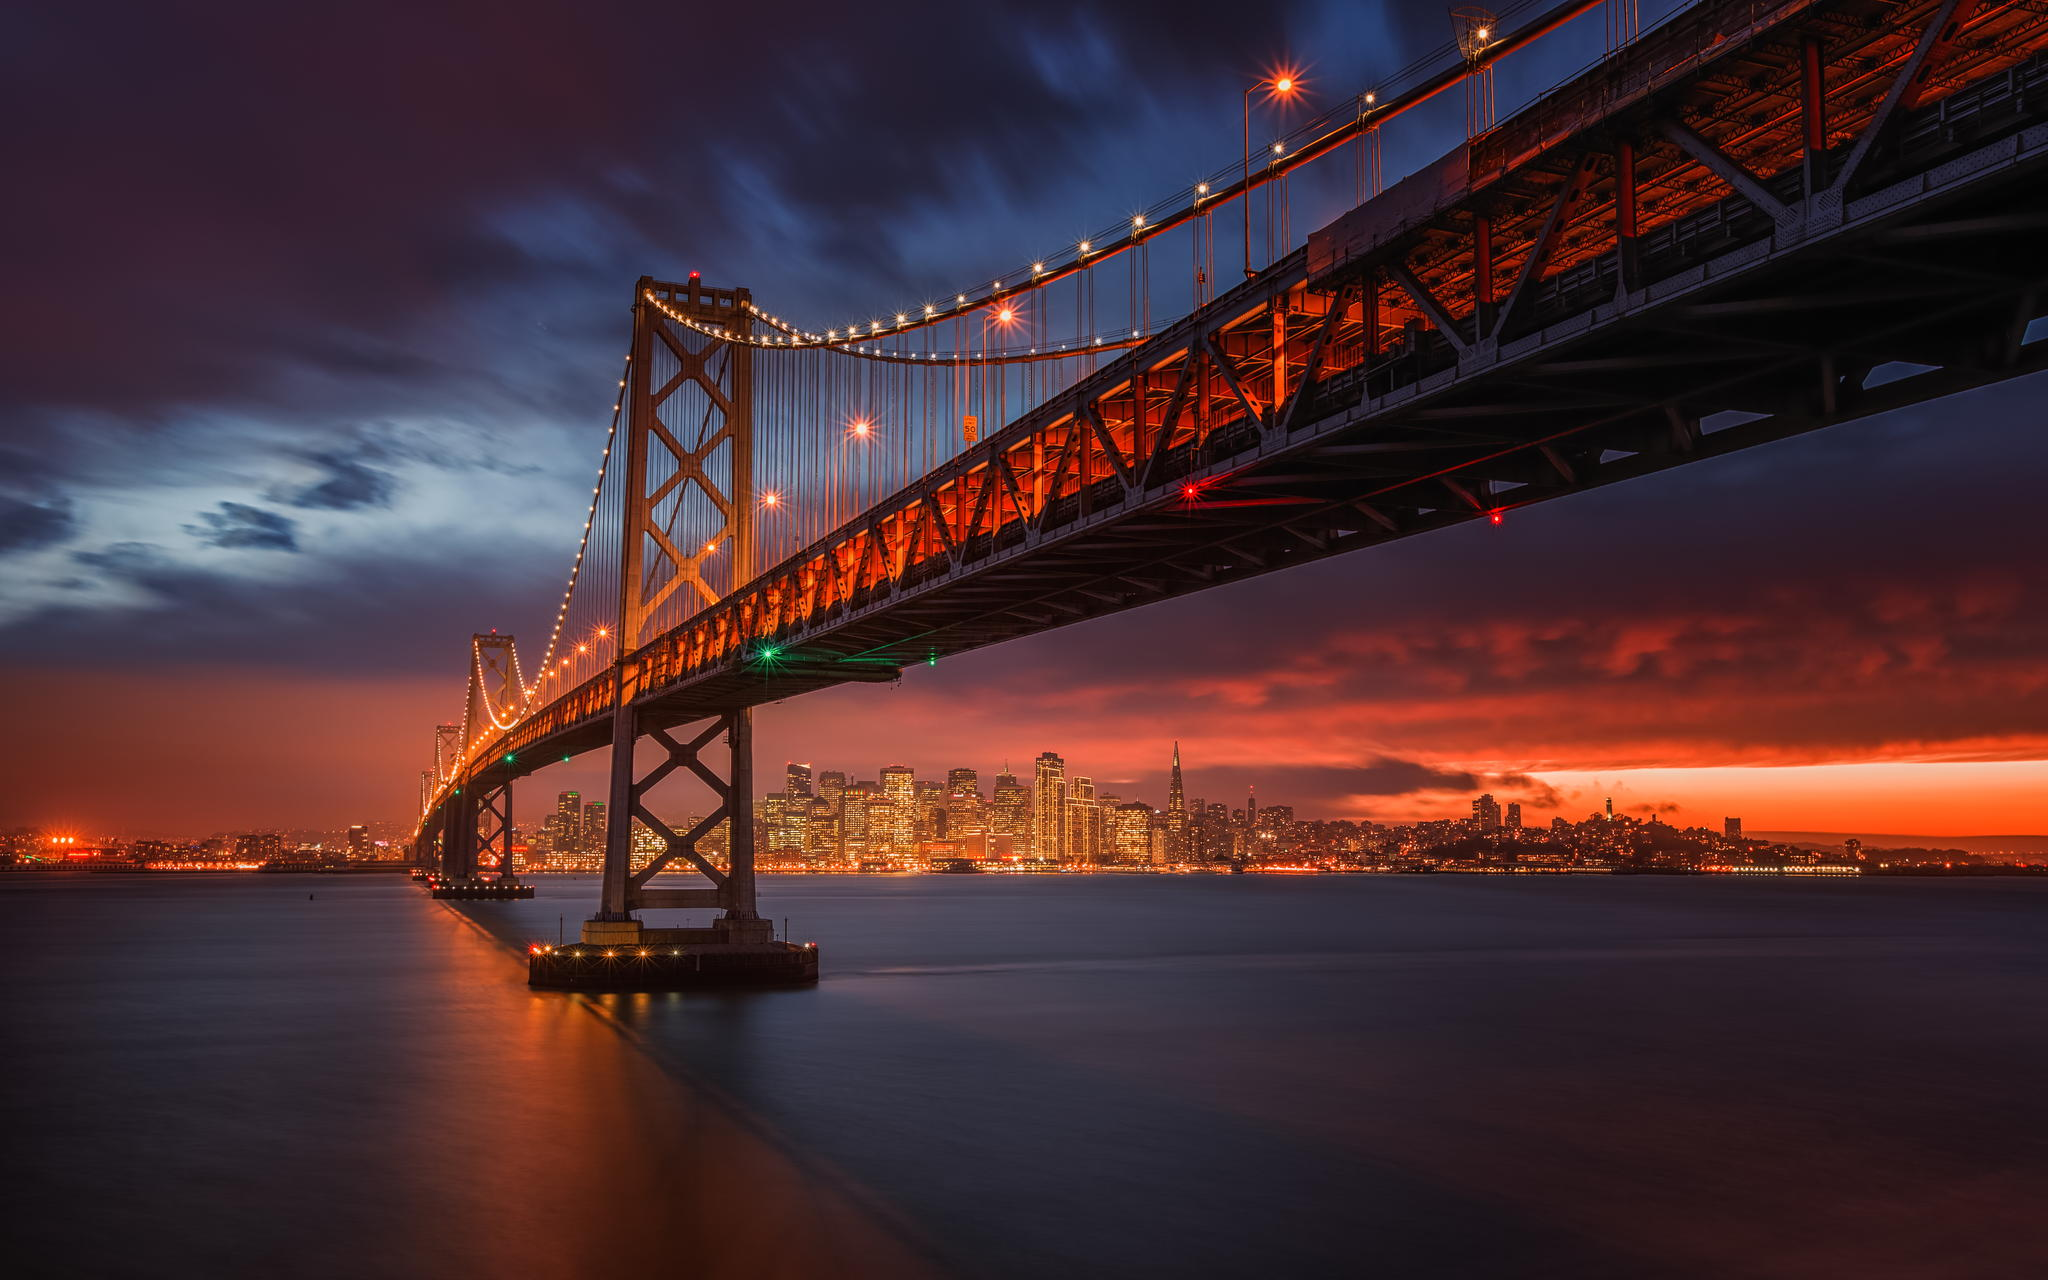 Explore San Francisco with Toby Harriman at 500px's January 24th Mobile Photowalk!